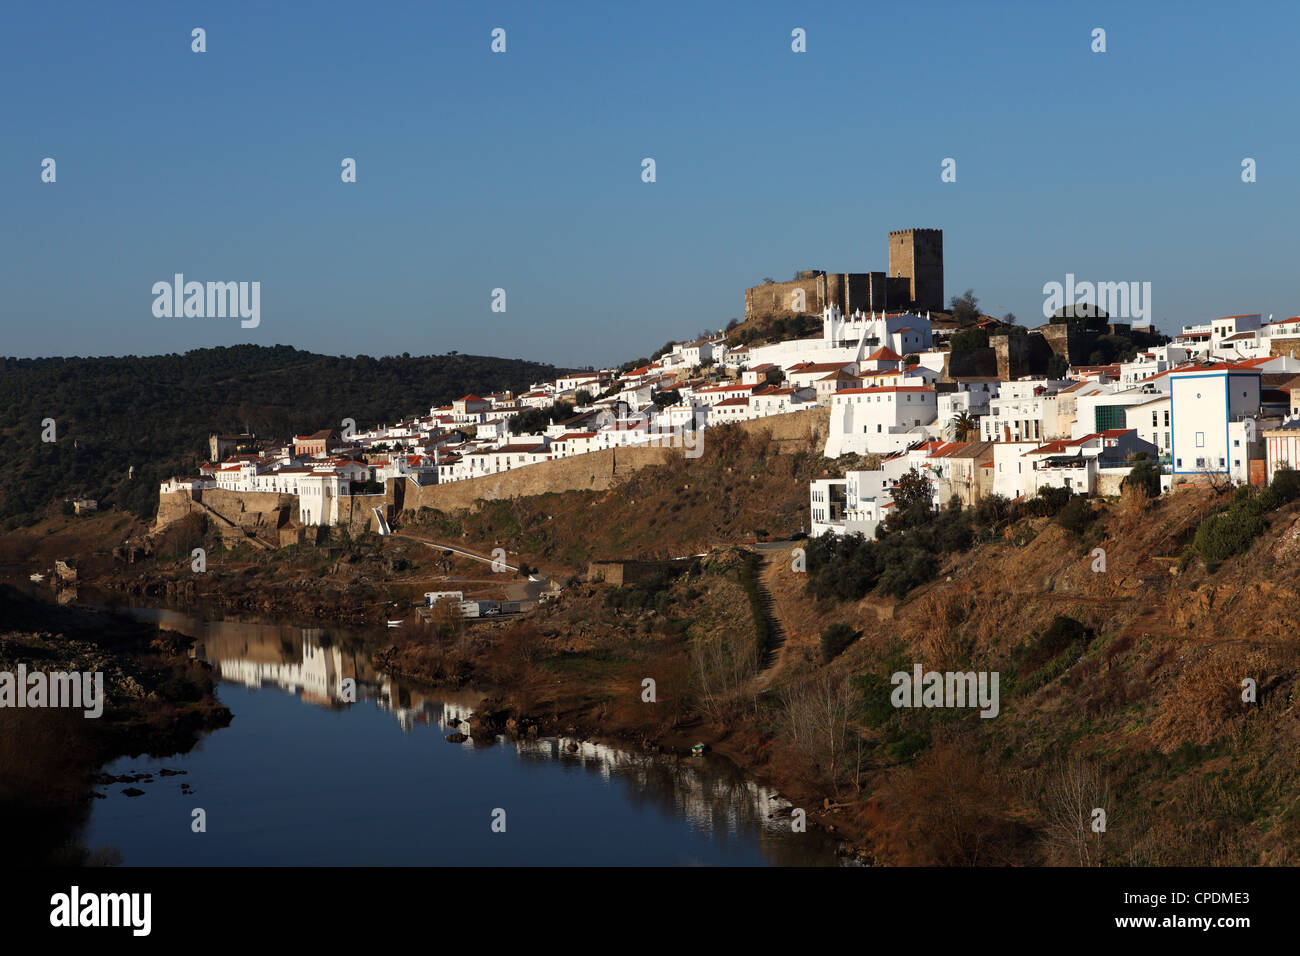 Mertola, which has a long Islamic history, by the Guadiana River, Alentejo, Portugal - Stock Image